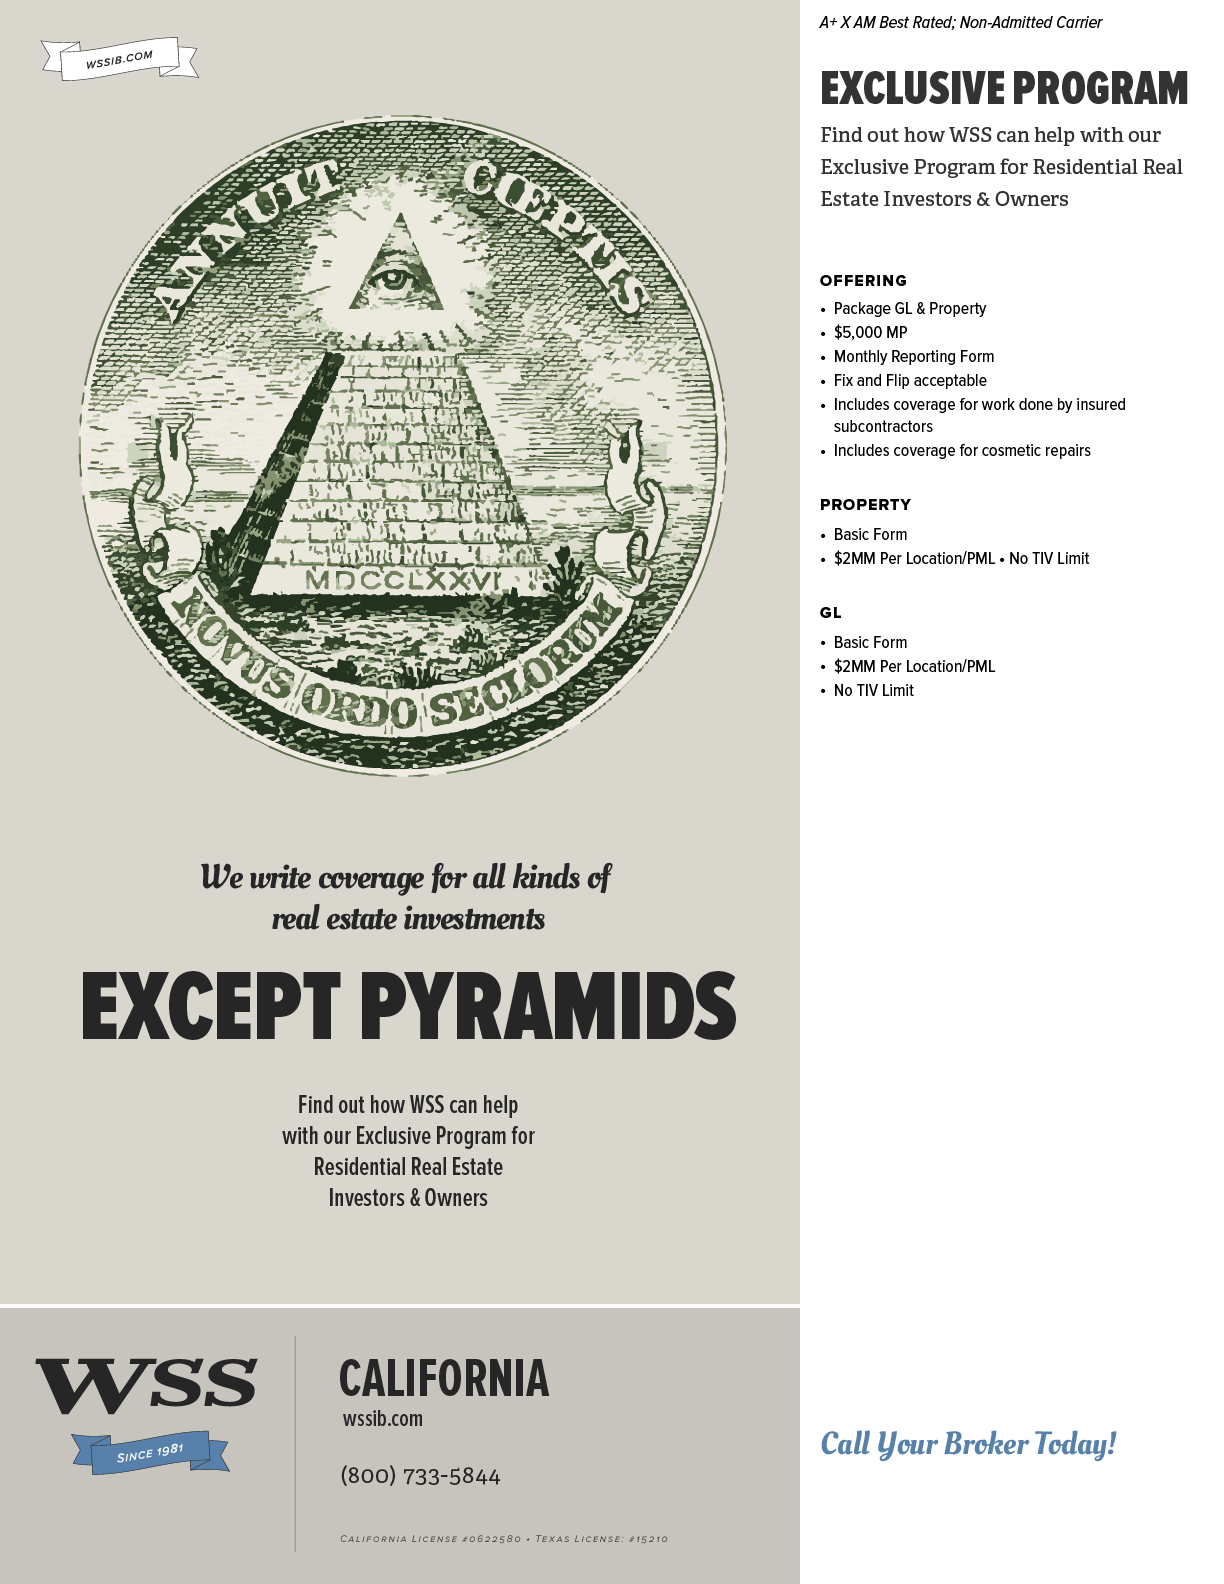 WSS-Flyer-ResidentialRealEstate-CA.png